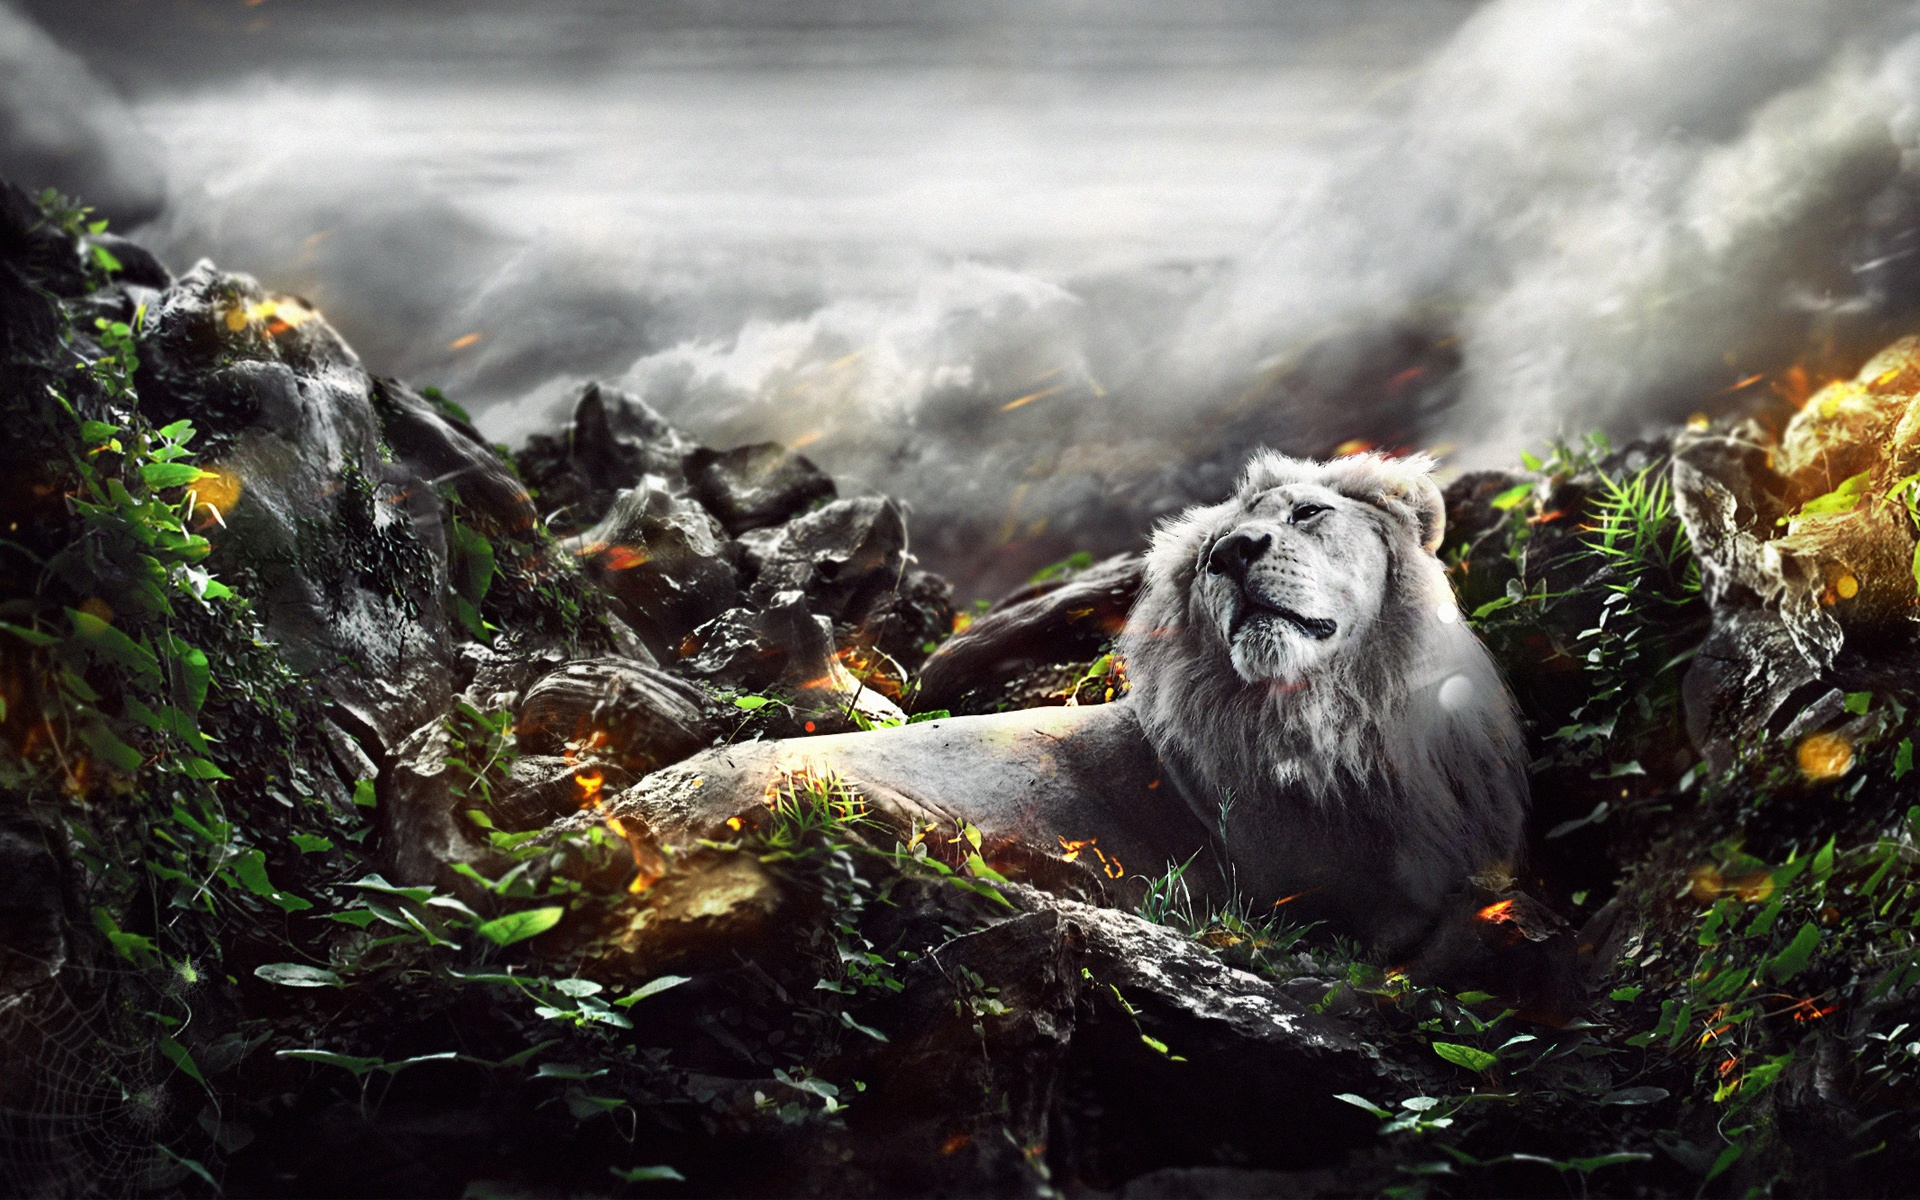 Jungle Lion Wallpapers In Jpg Format For Free Download